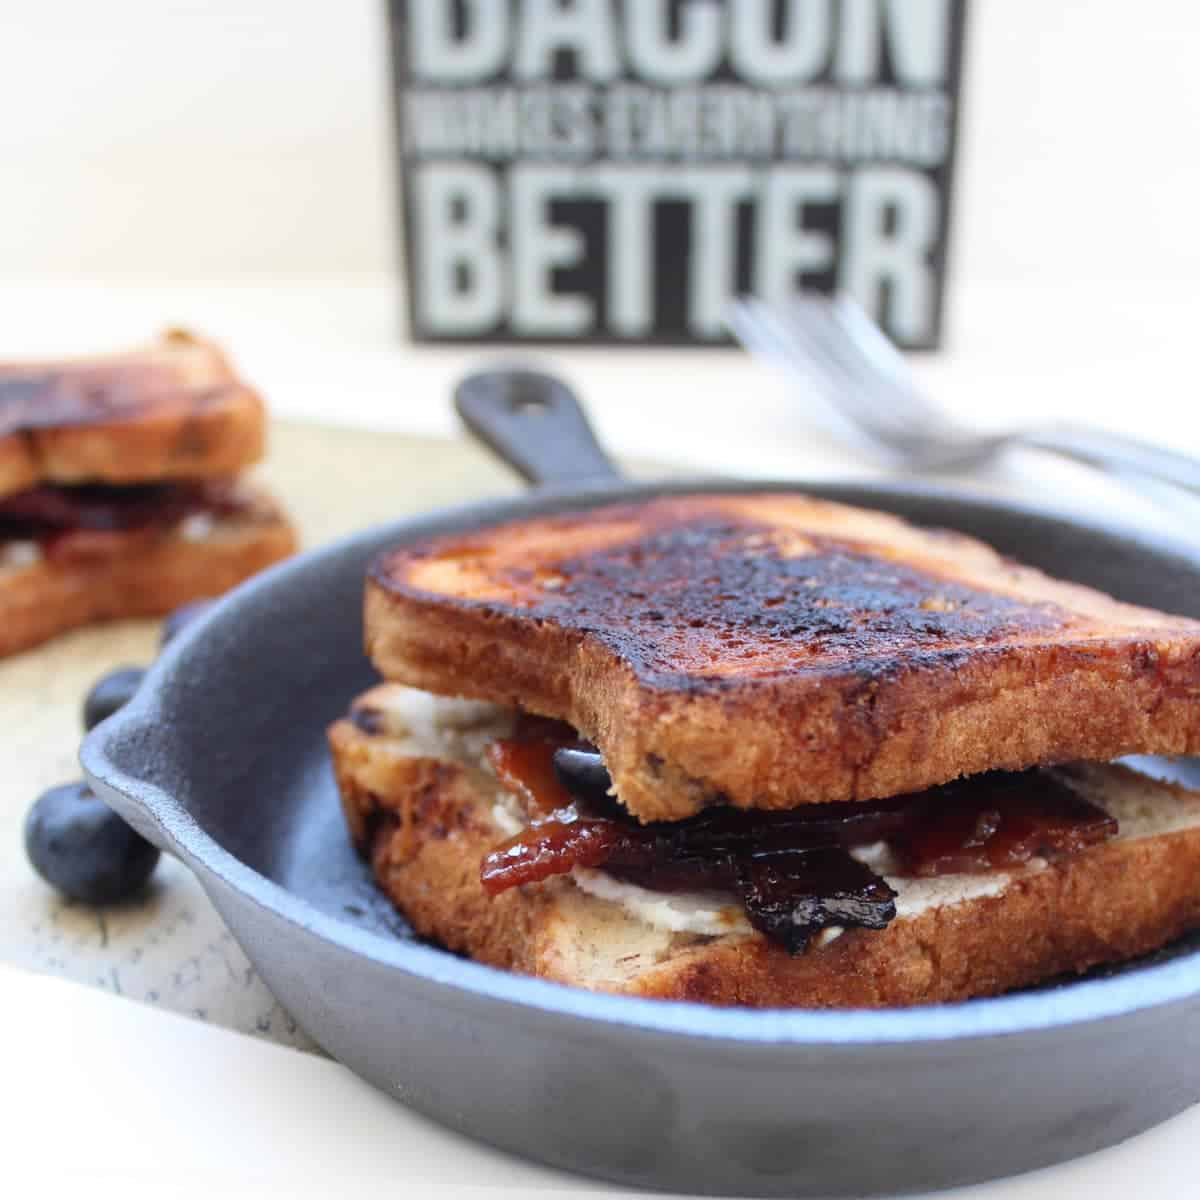 Candied Bacon Goat Cheese Blueberry Grilled Cheese